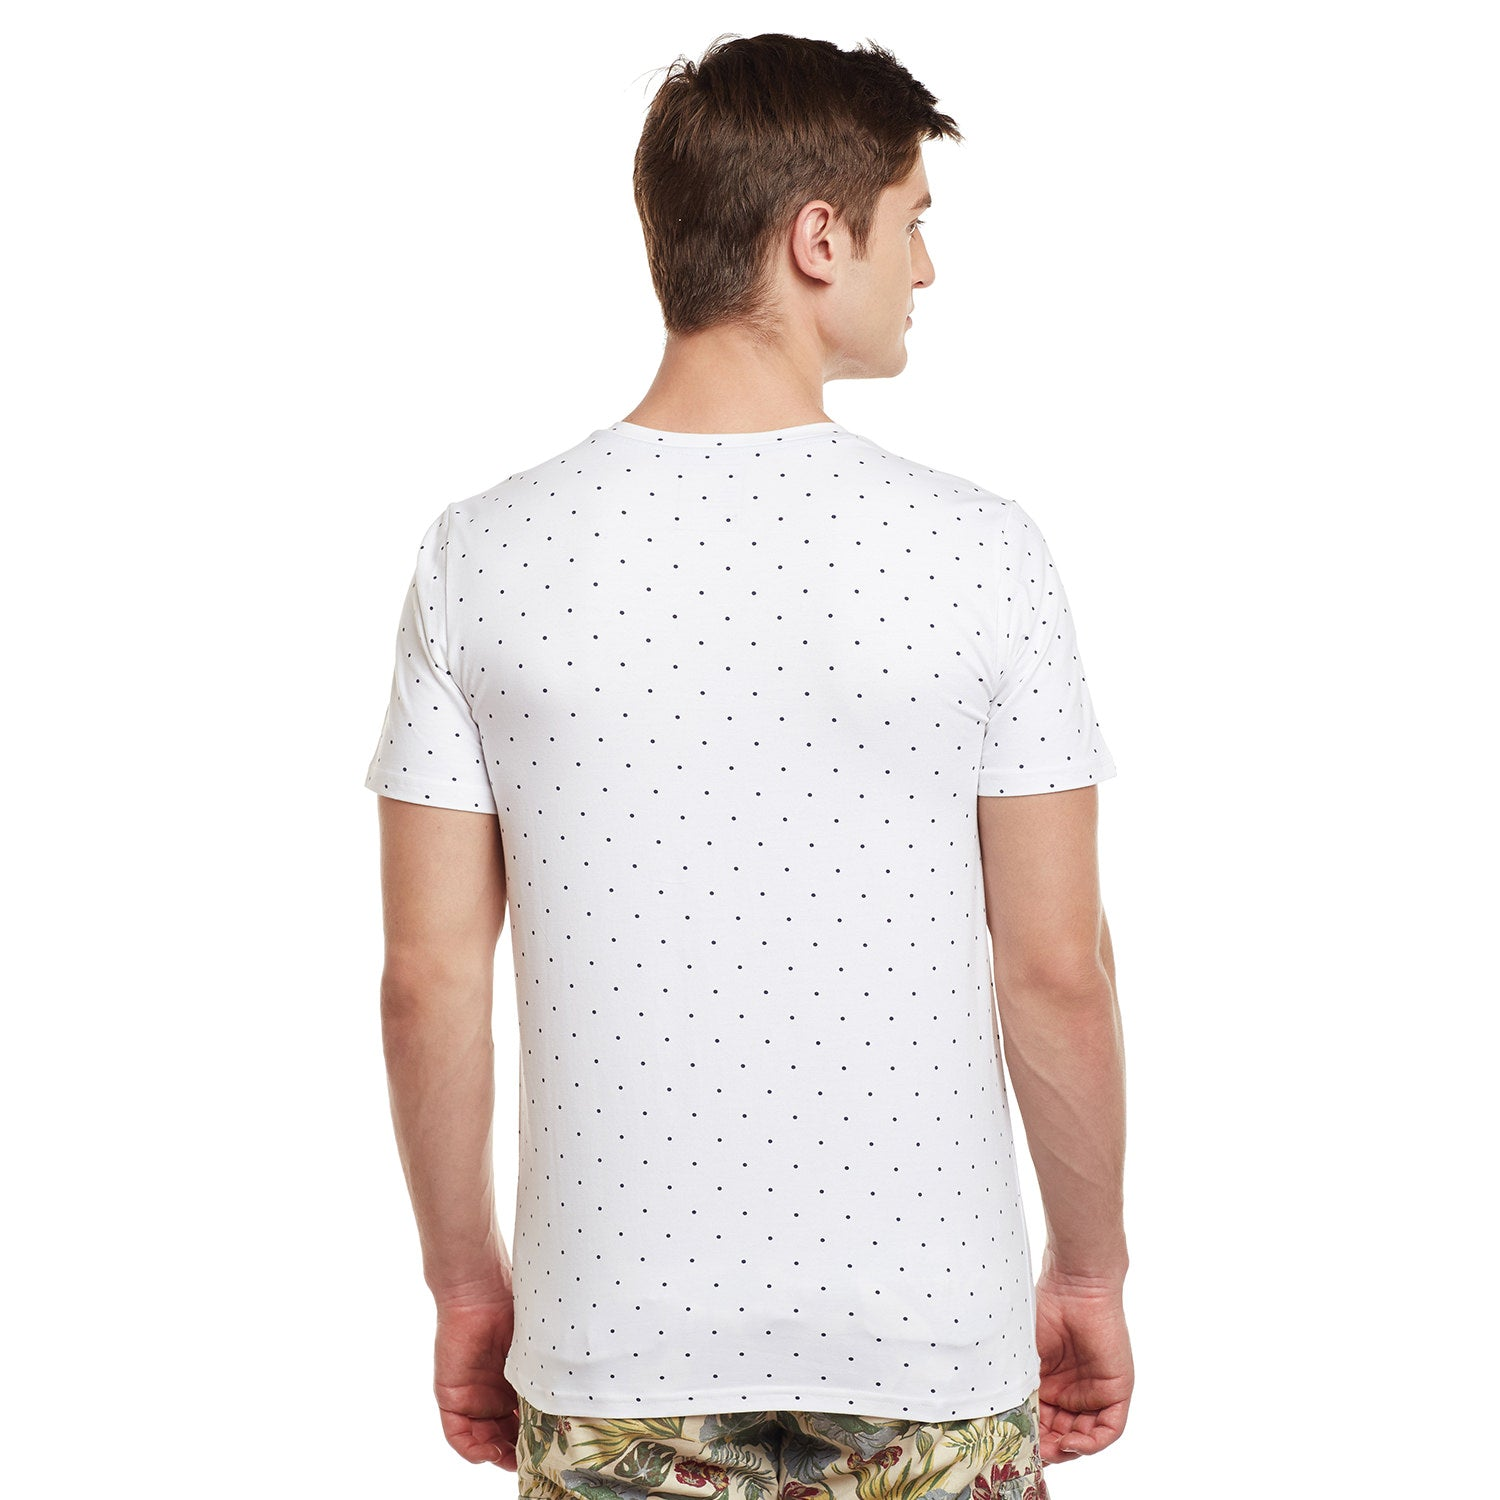 Atorse Mens Half Sleeve T-Shirt Polka Dot Printed With Colo